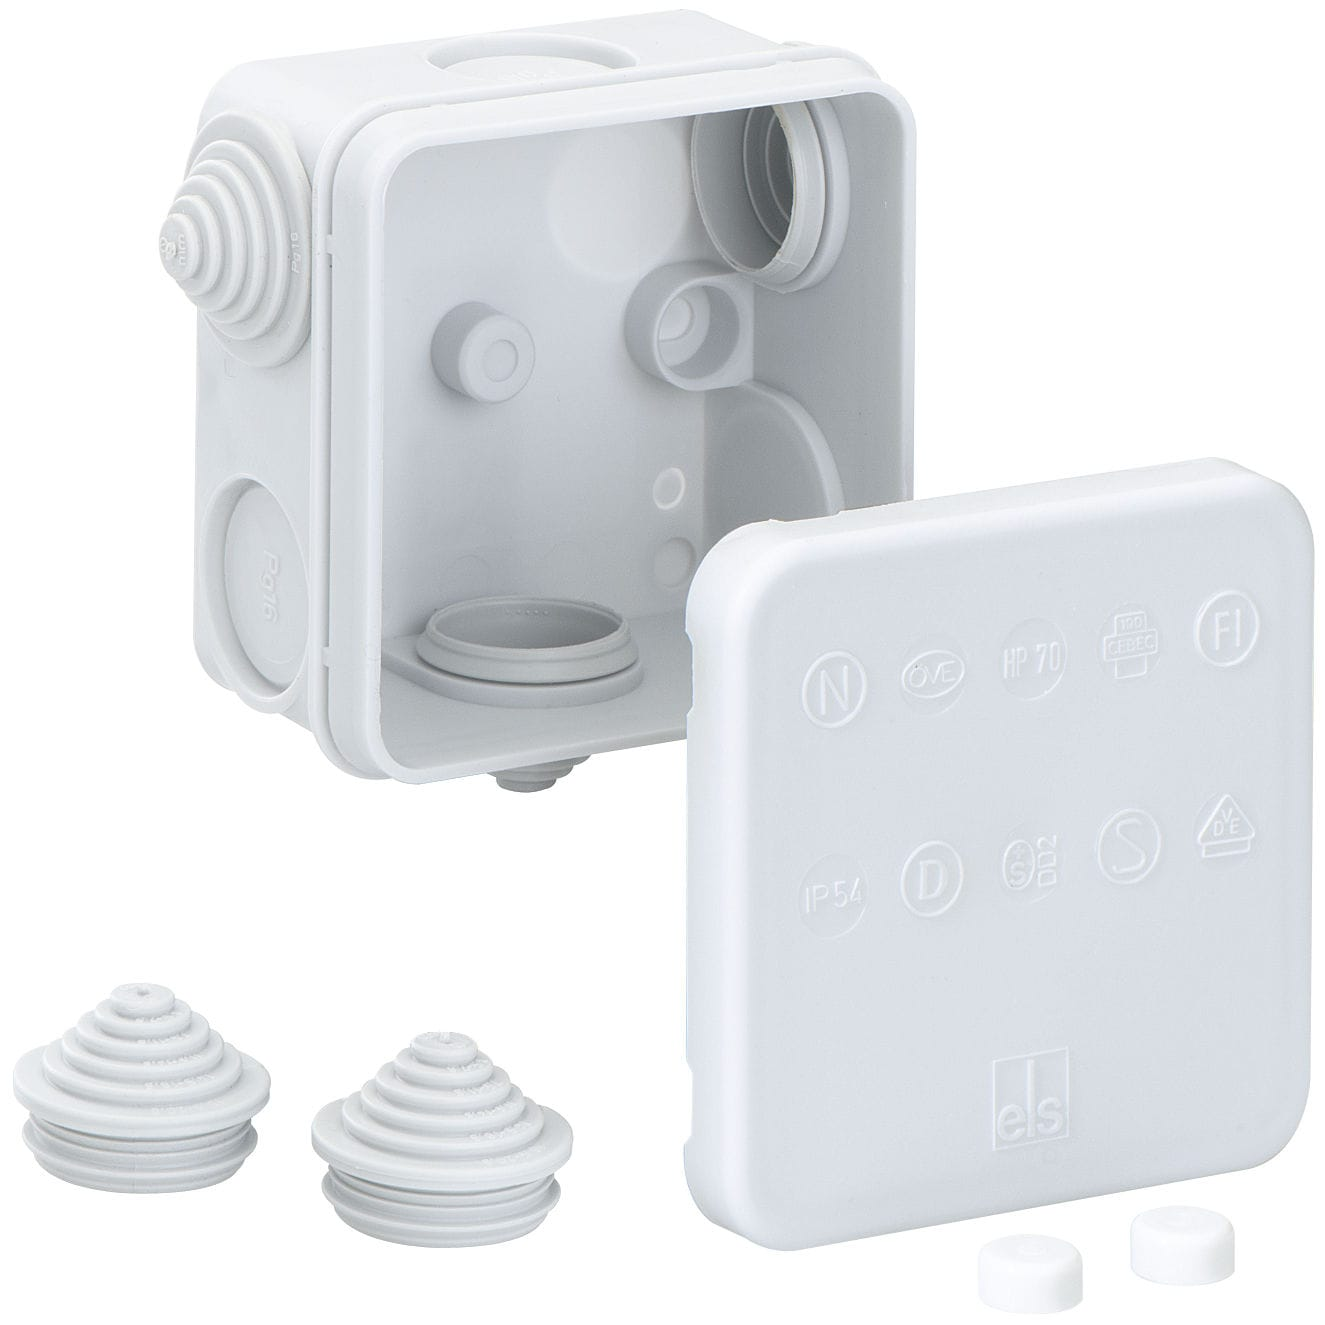 Wall mounted junction box ip55 polypropylene with elastic wall mounted junction box ip55 polypropylene with elastic membranes hp series sciox Choice Image